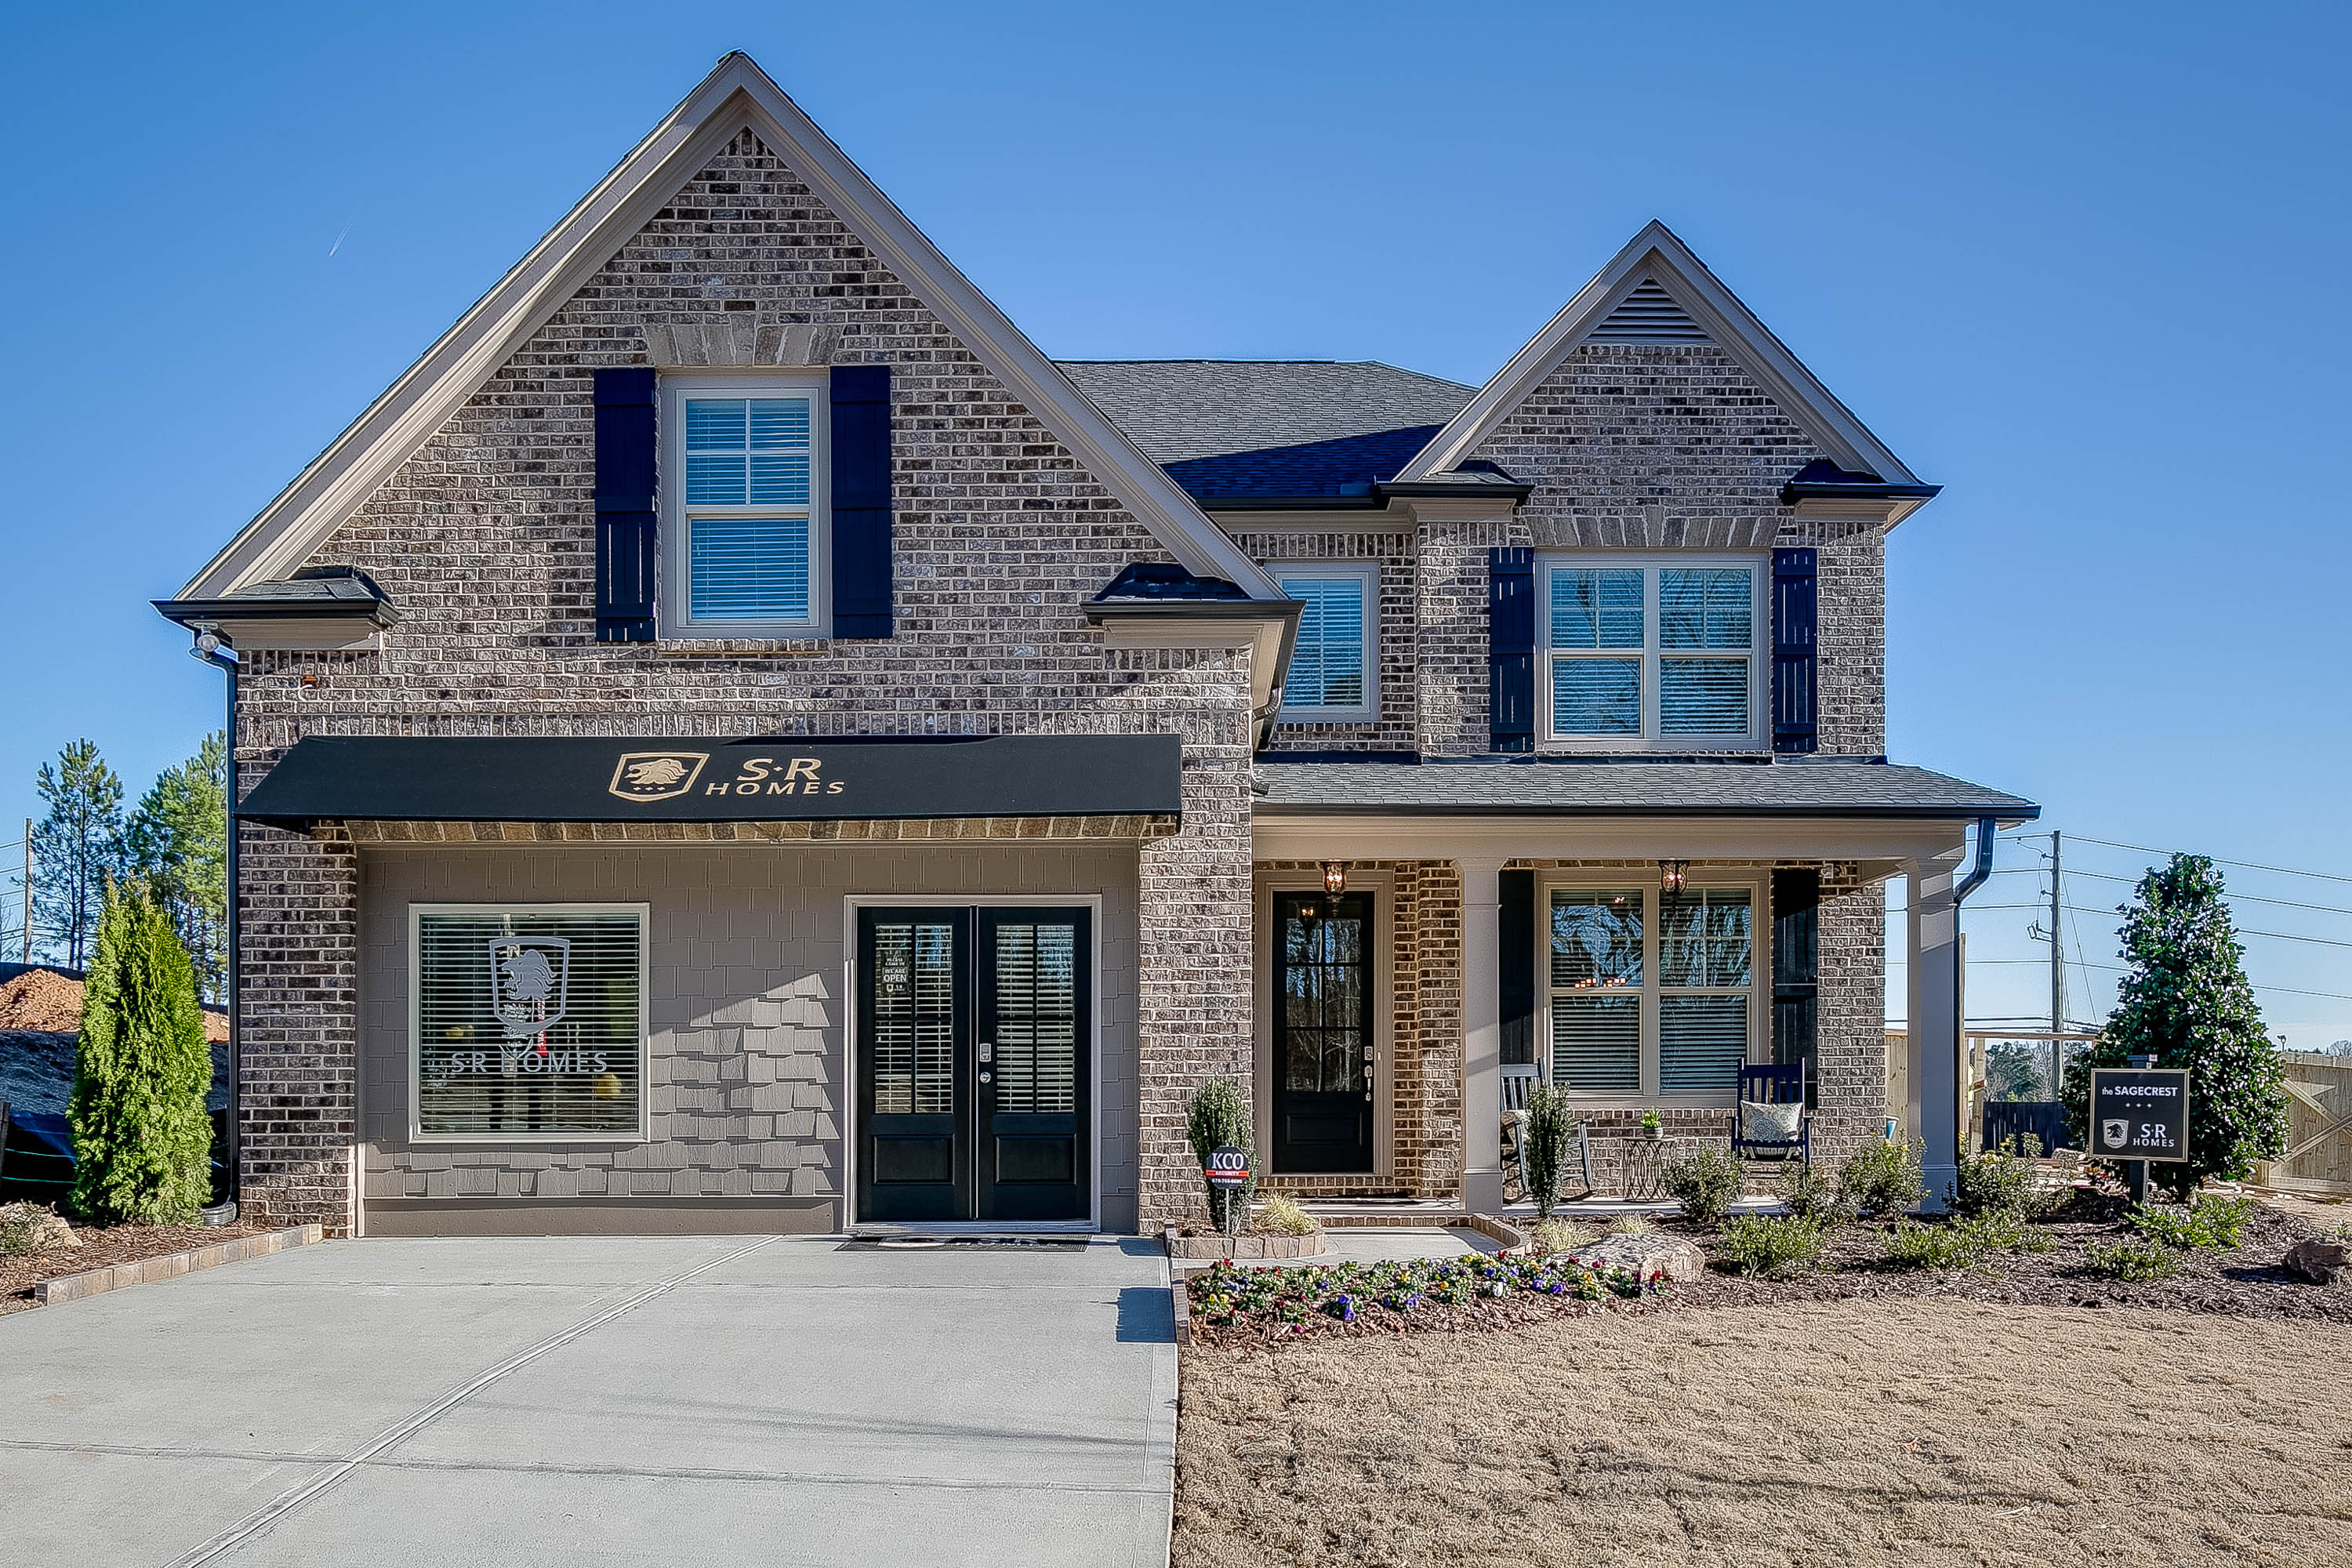 SR Homes Opens Model Home at Brentford Station in Gwinnett County